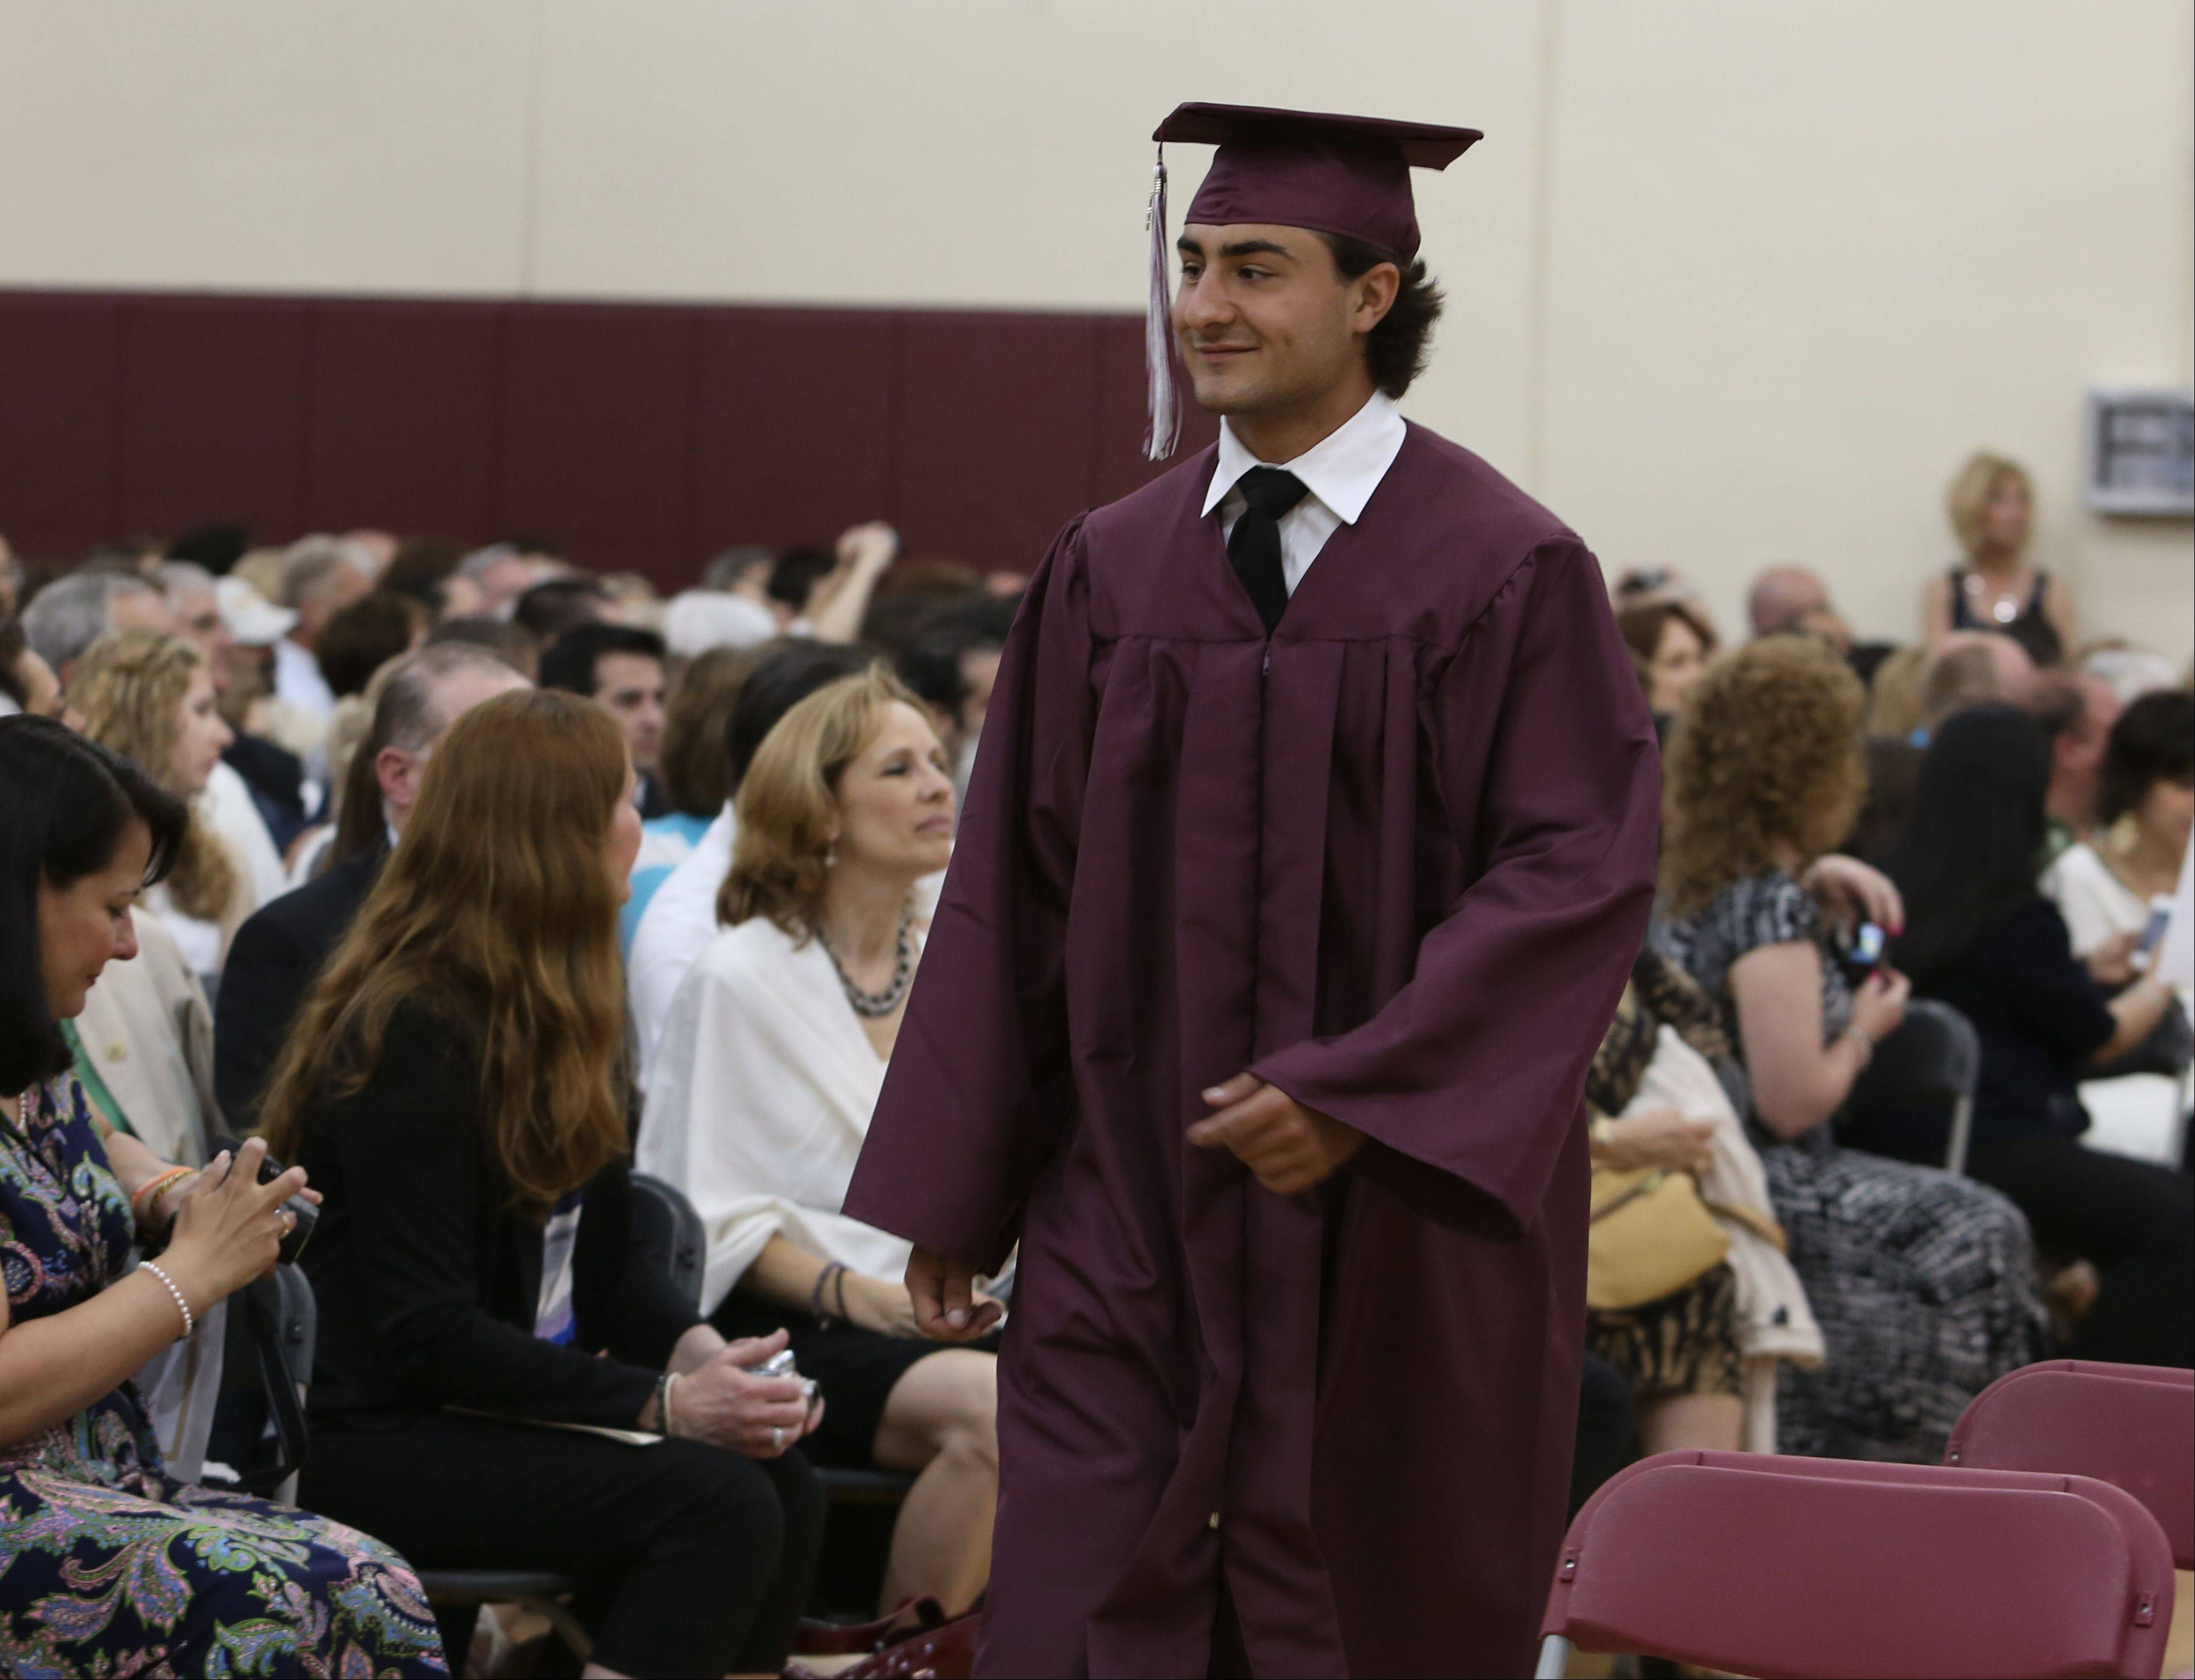 Images from the Montini Catholic High School graduation on Sunday, May 19 in Lombard.